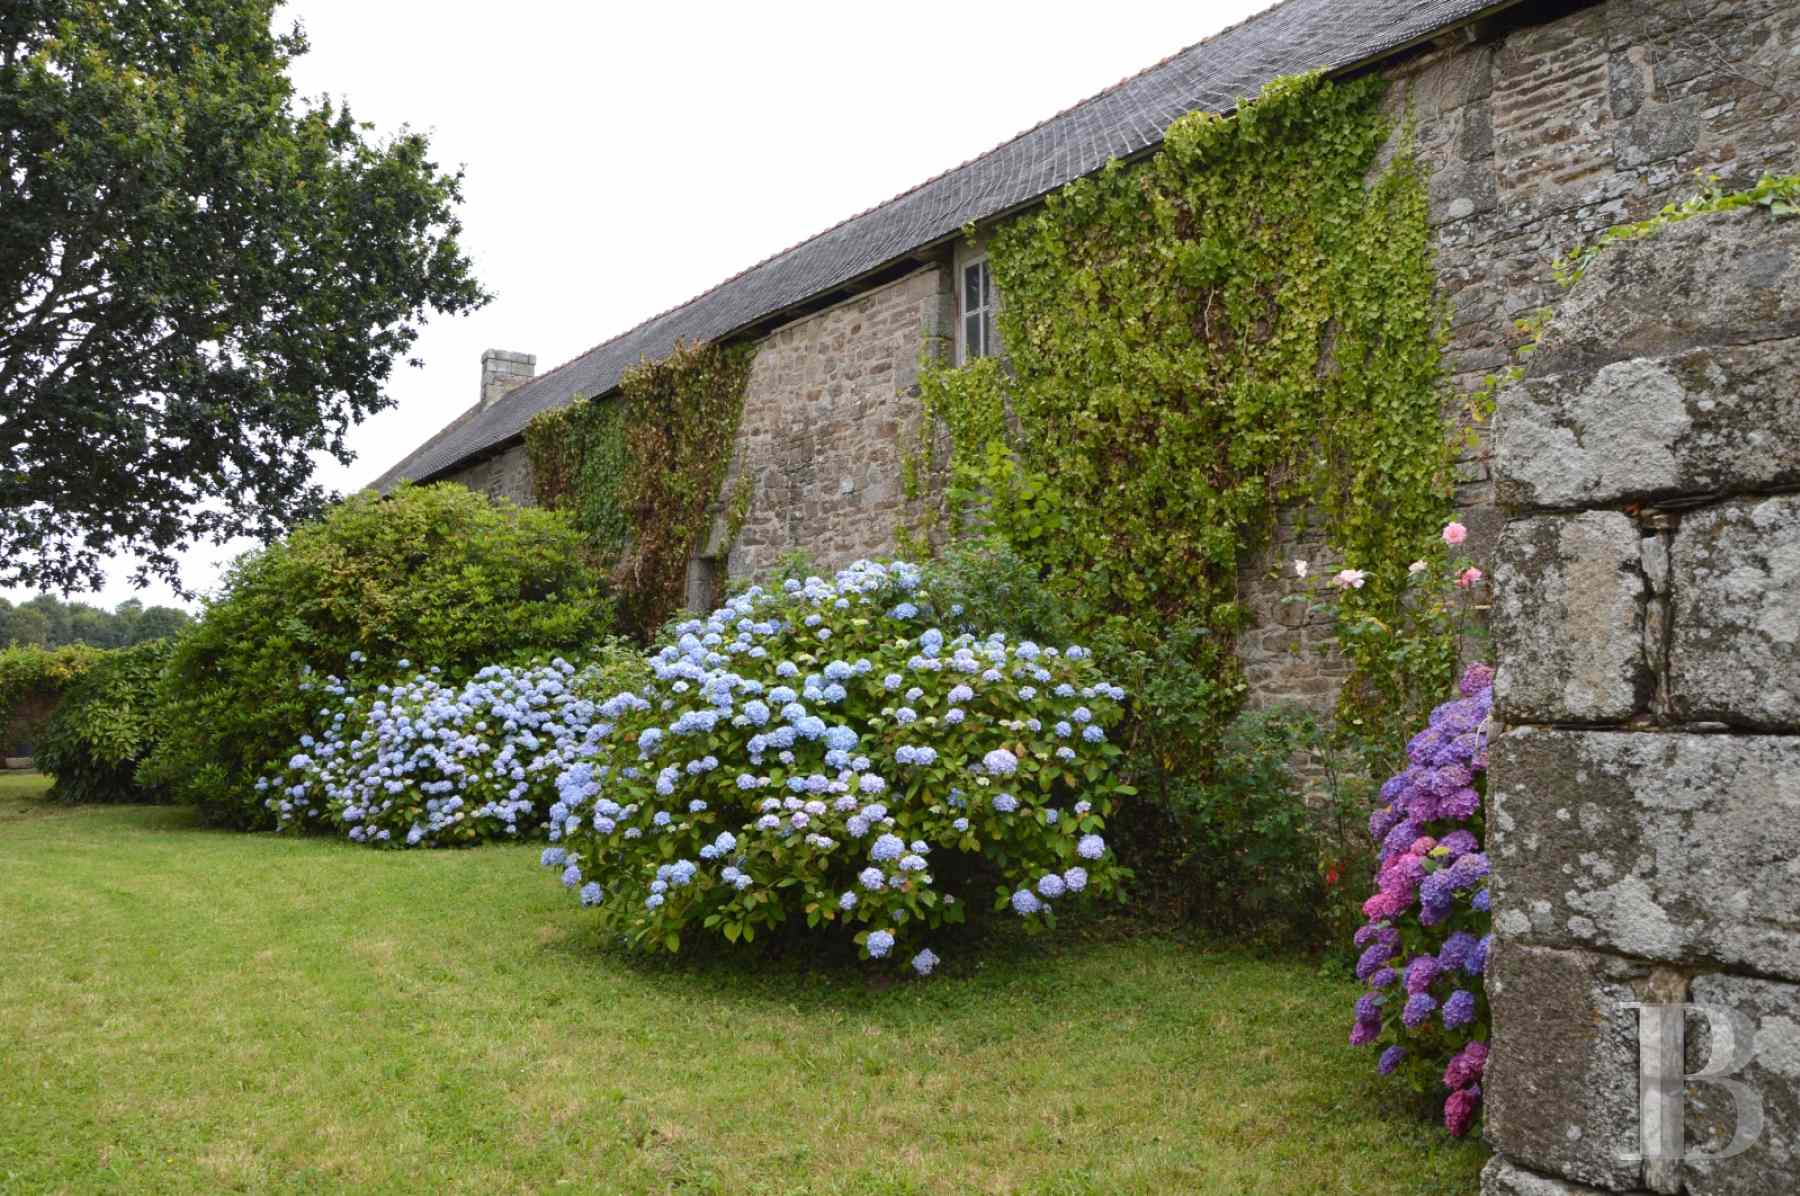 France mansions for sale brittany finistere property - 3 zoom